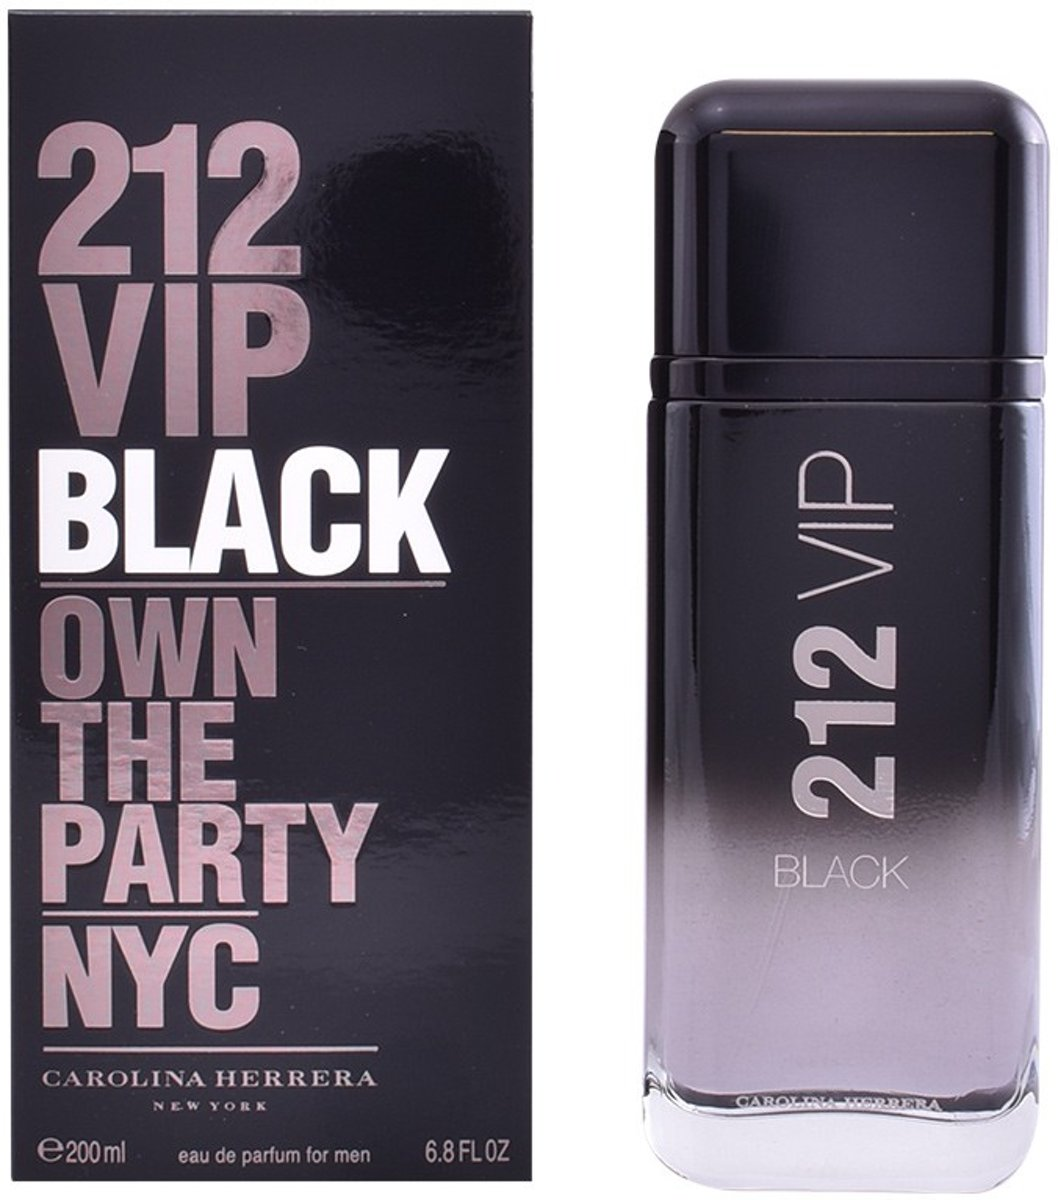 MULTI BUNDEL 2 stuks 212 VIP BLACK Eau de Perfume Spray 200 ml